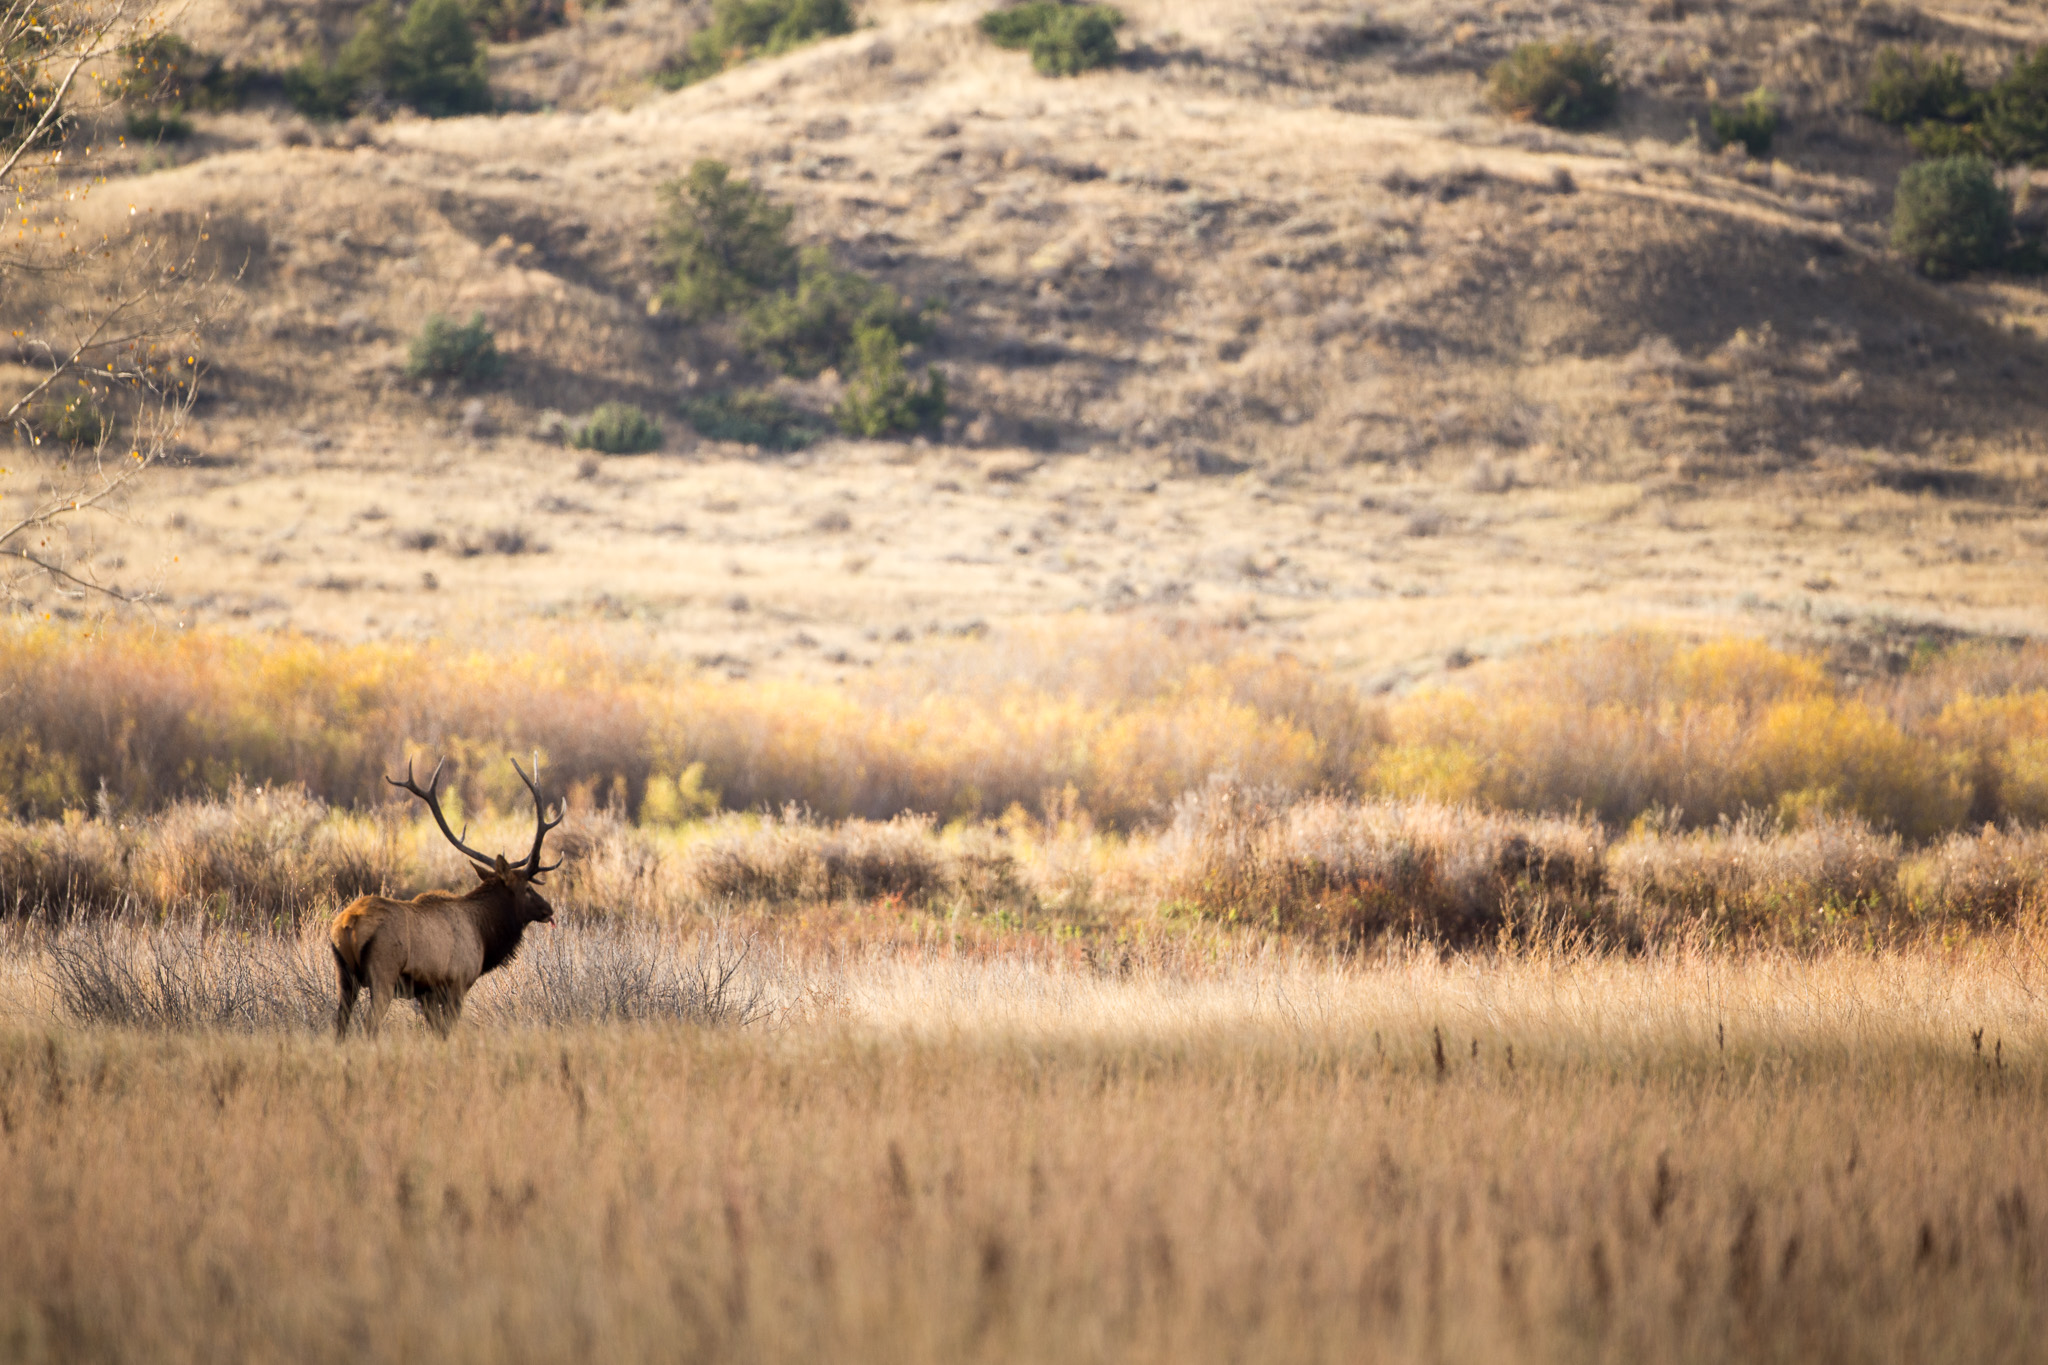 Western Hunt Company - Big Game Hunting at its Finest